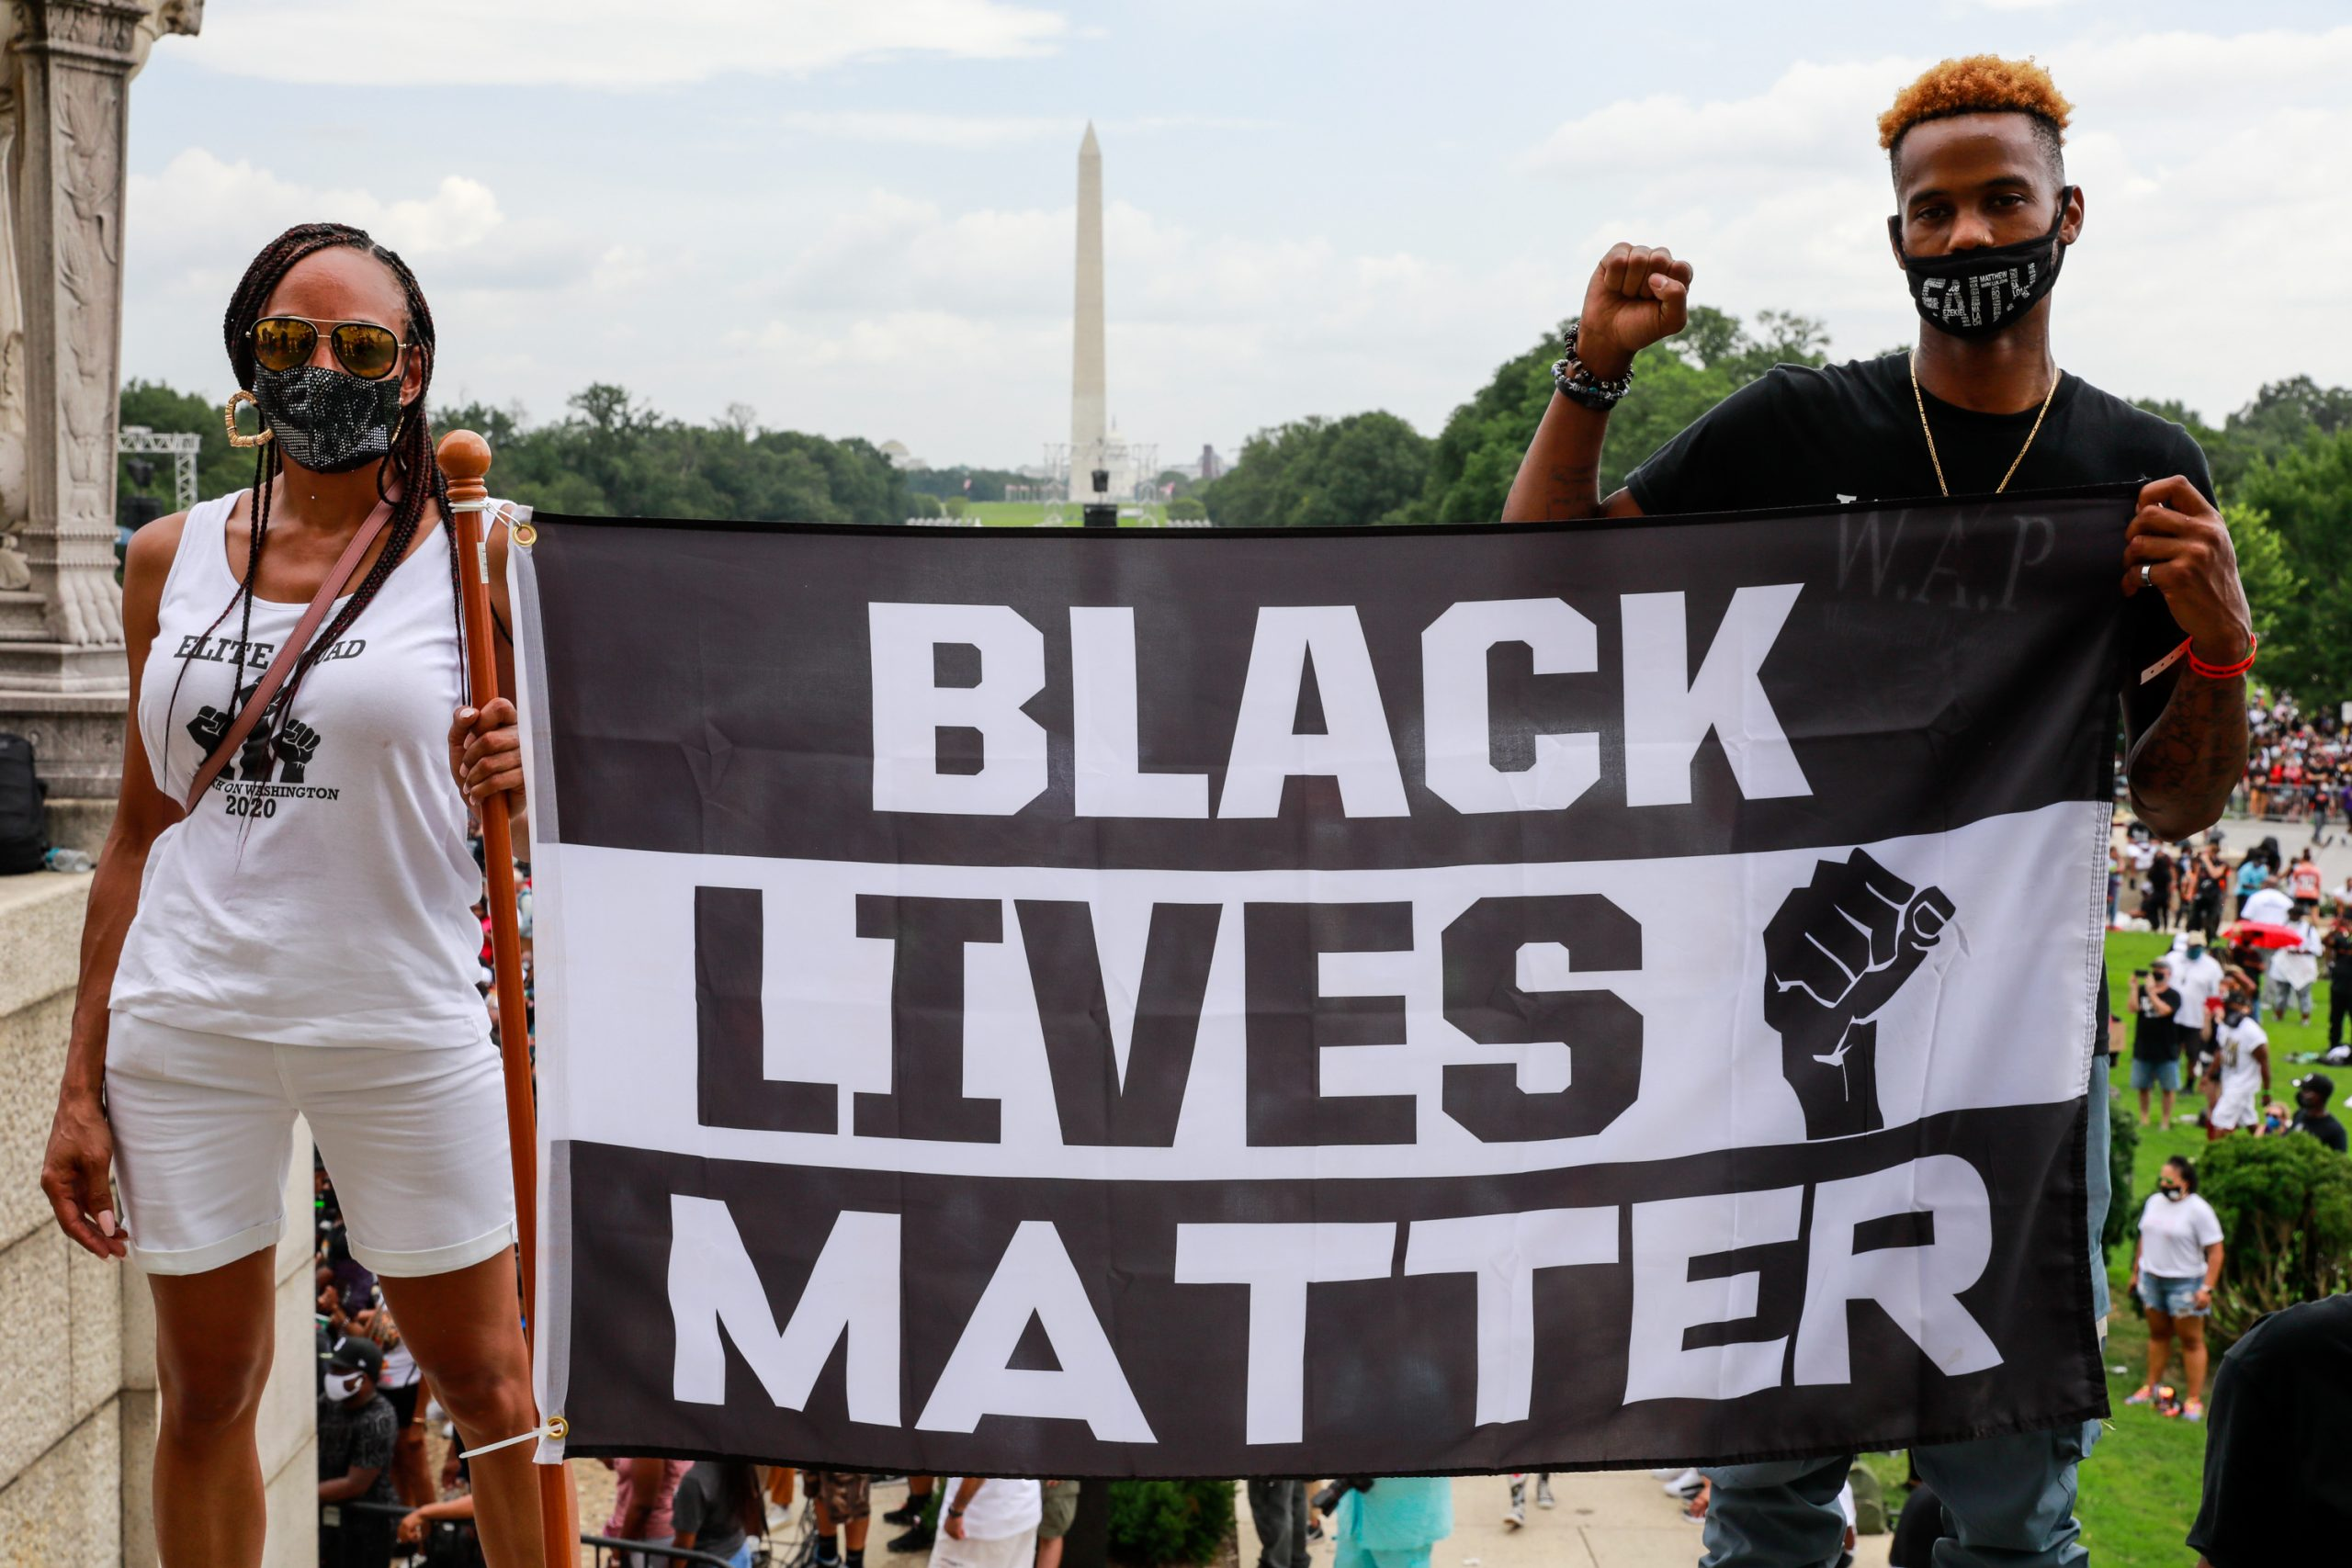 Protesters hold a Black Lives Matter banner during an August 2020 march in Washington D.C.